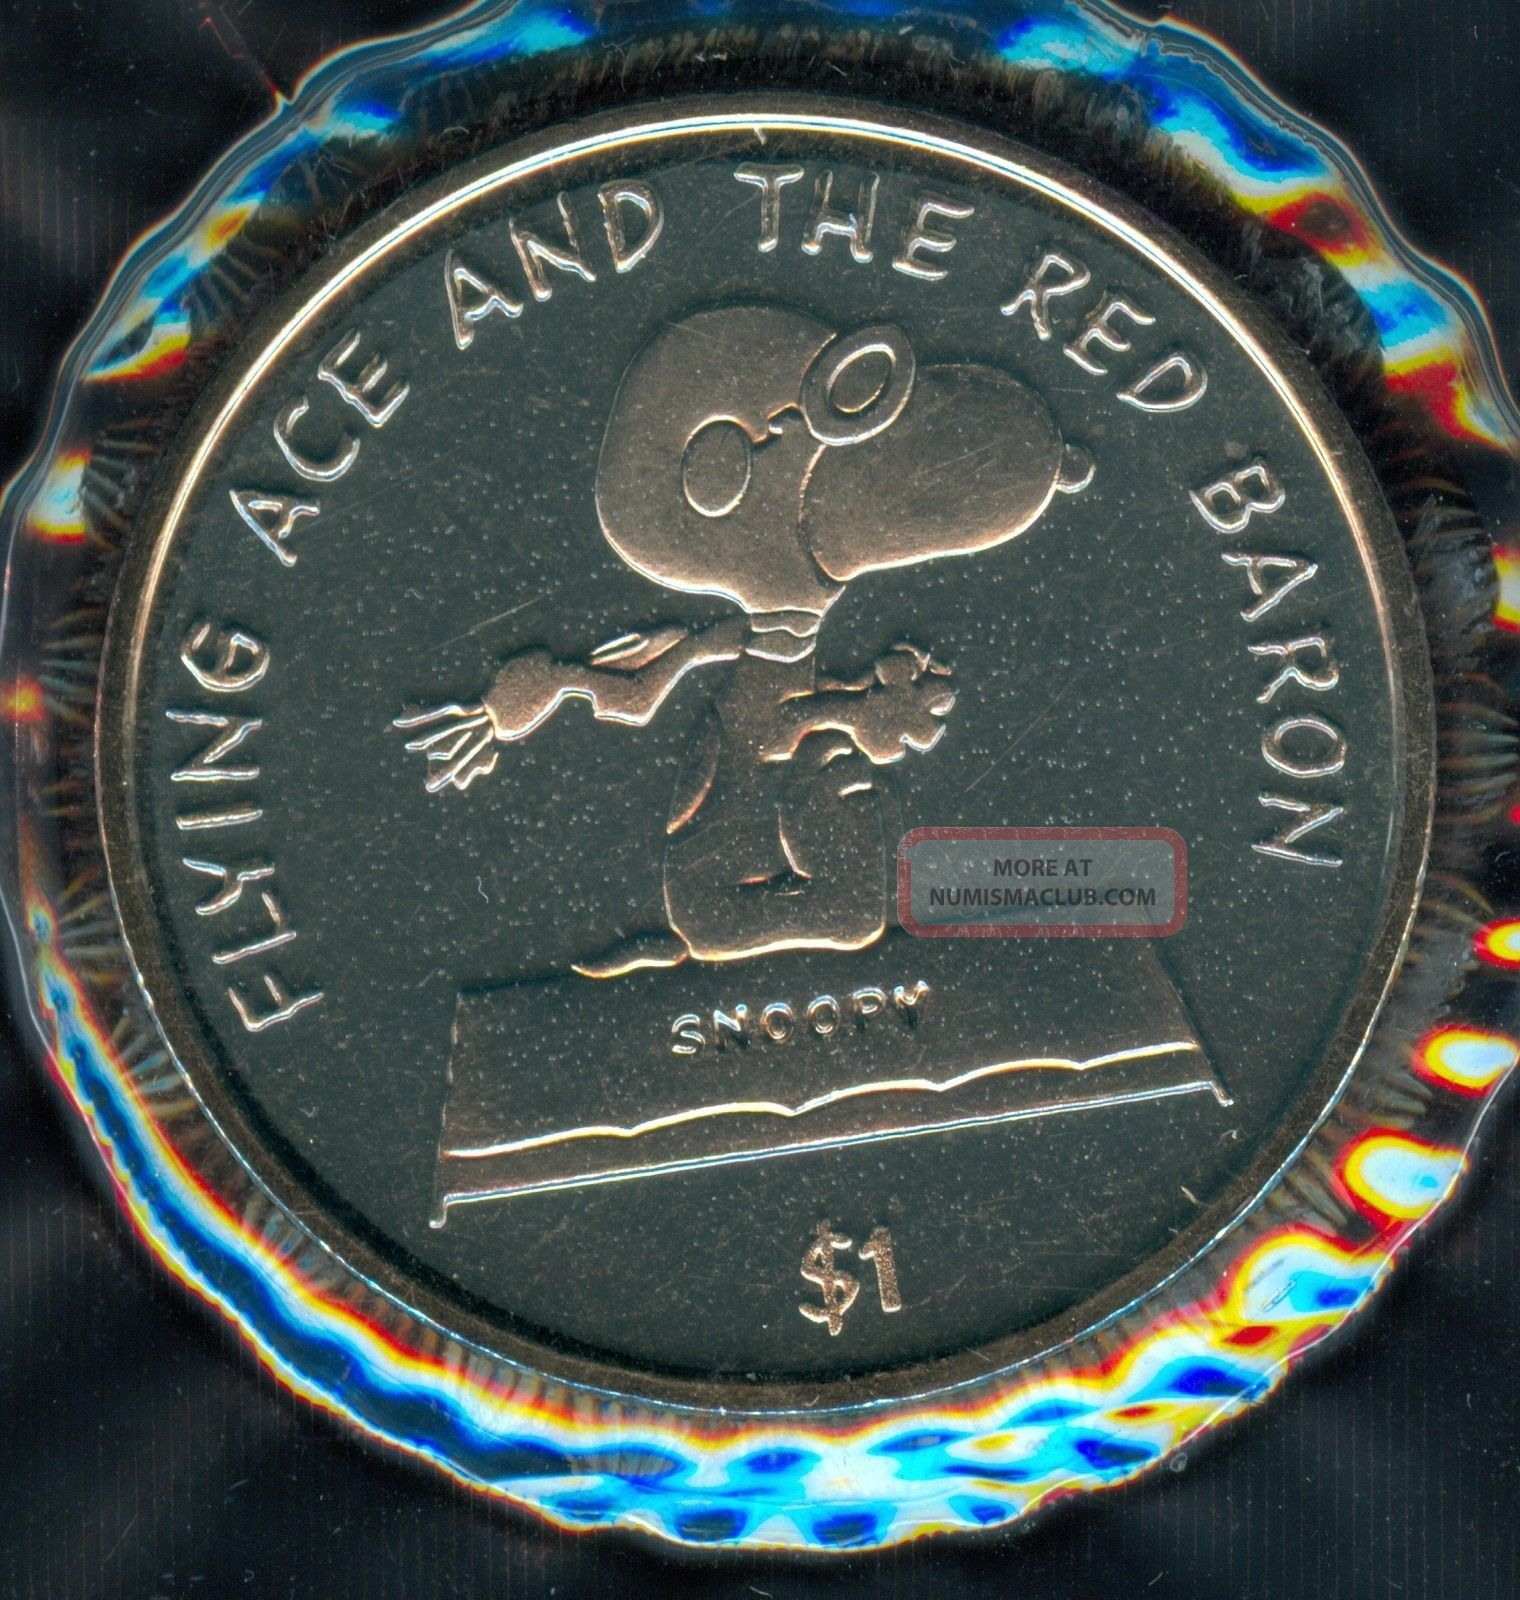 2001 Niue Snoopy Flying Ace Dollar Coins: World photo